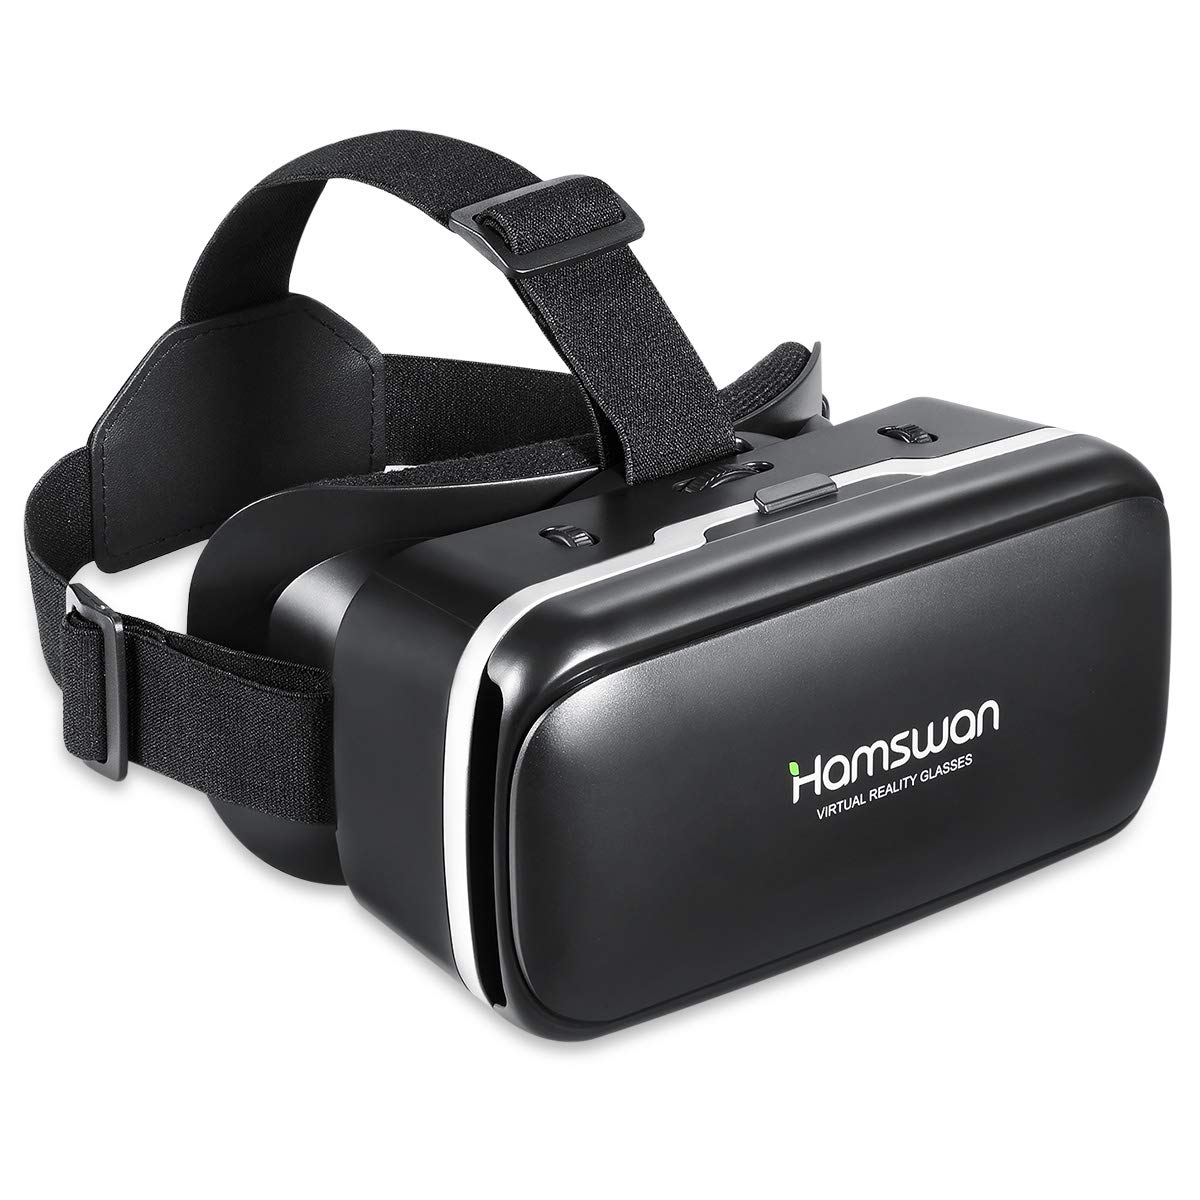 : VR Headset for iPhone & Android Phone